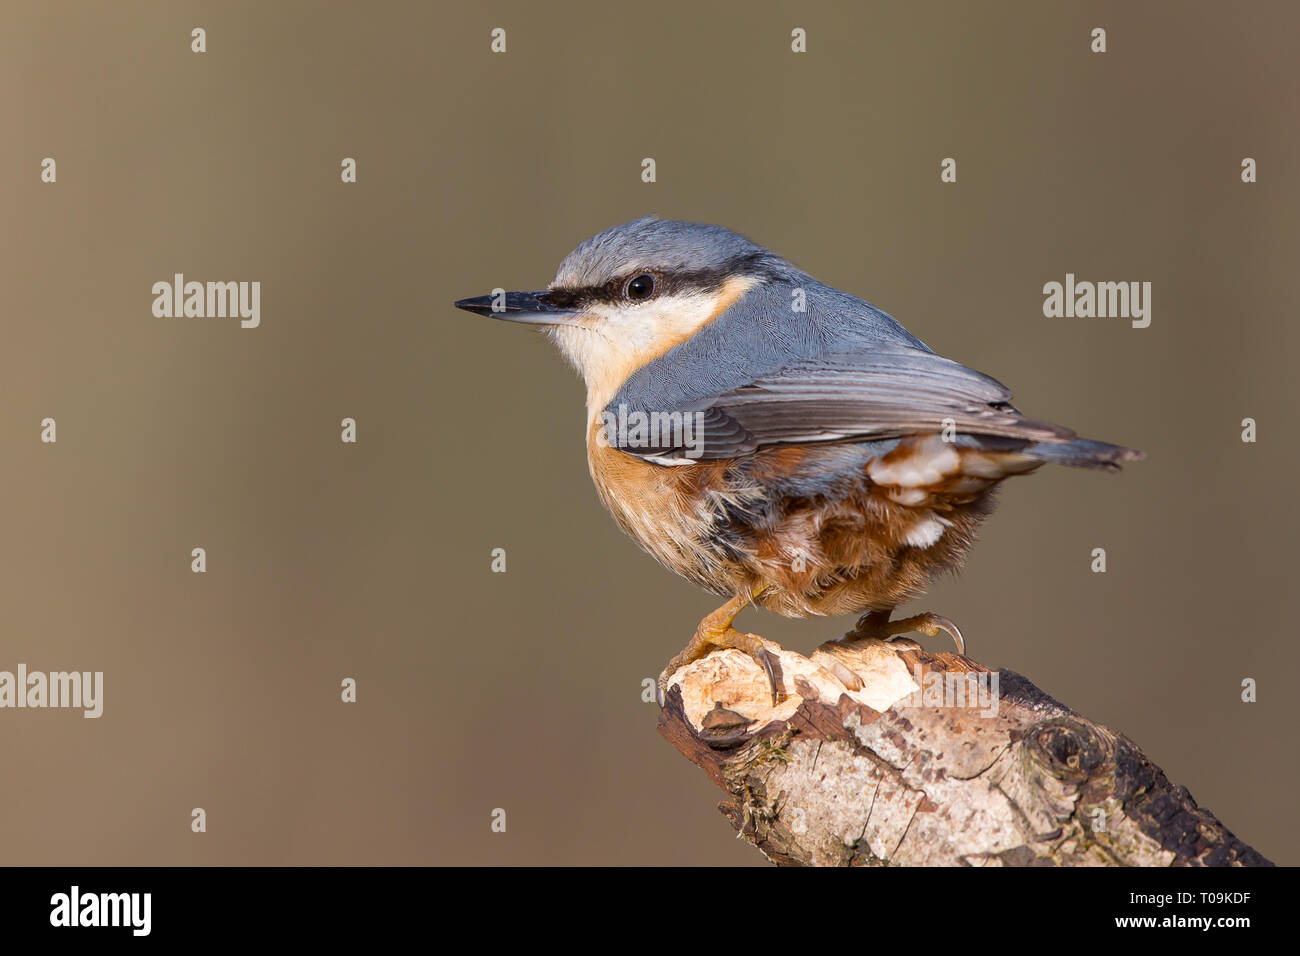 Detailed, close-up rear view of single nuthatch (Sitta europaea) perched on tip of wooden branch, facing image left. - Stock Image